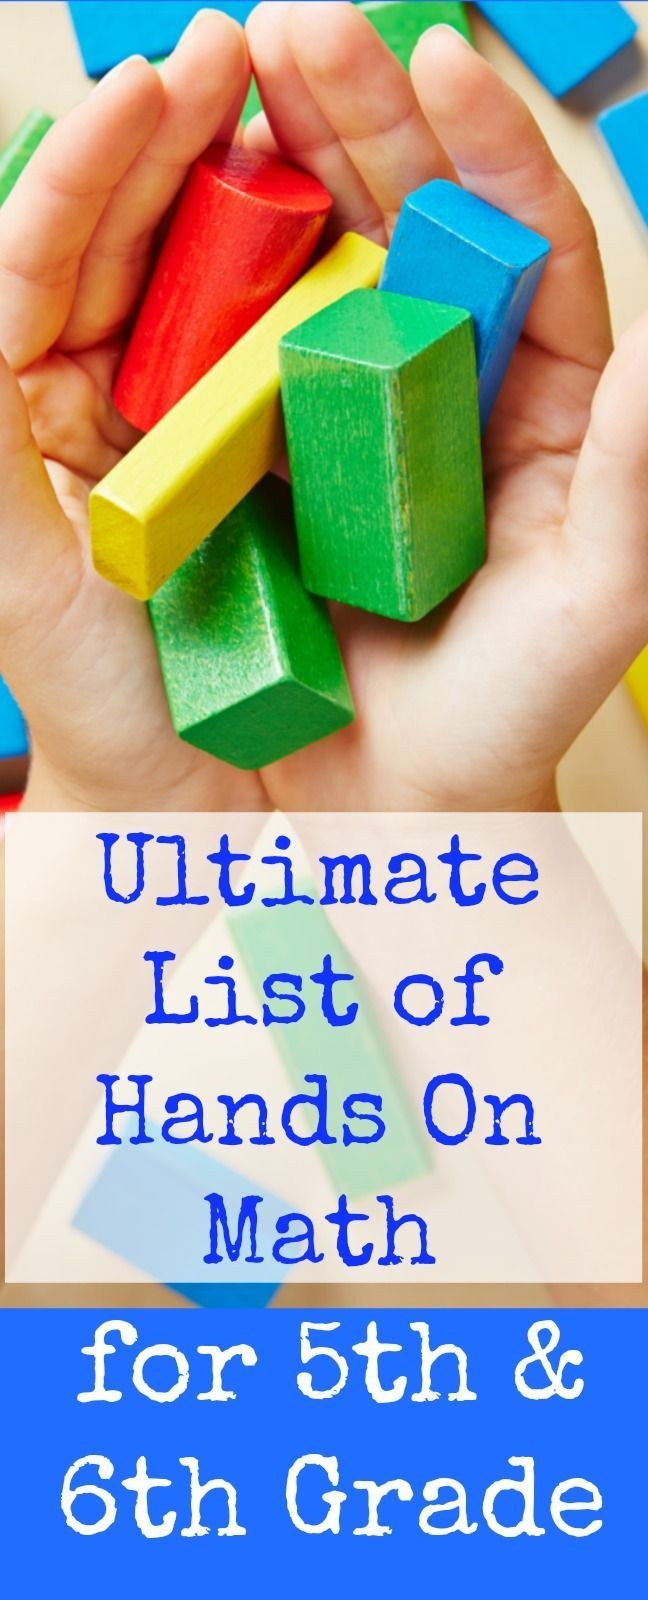 Ultimate list of hands on math for 5th grade and 6...